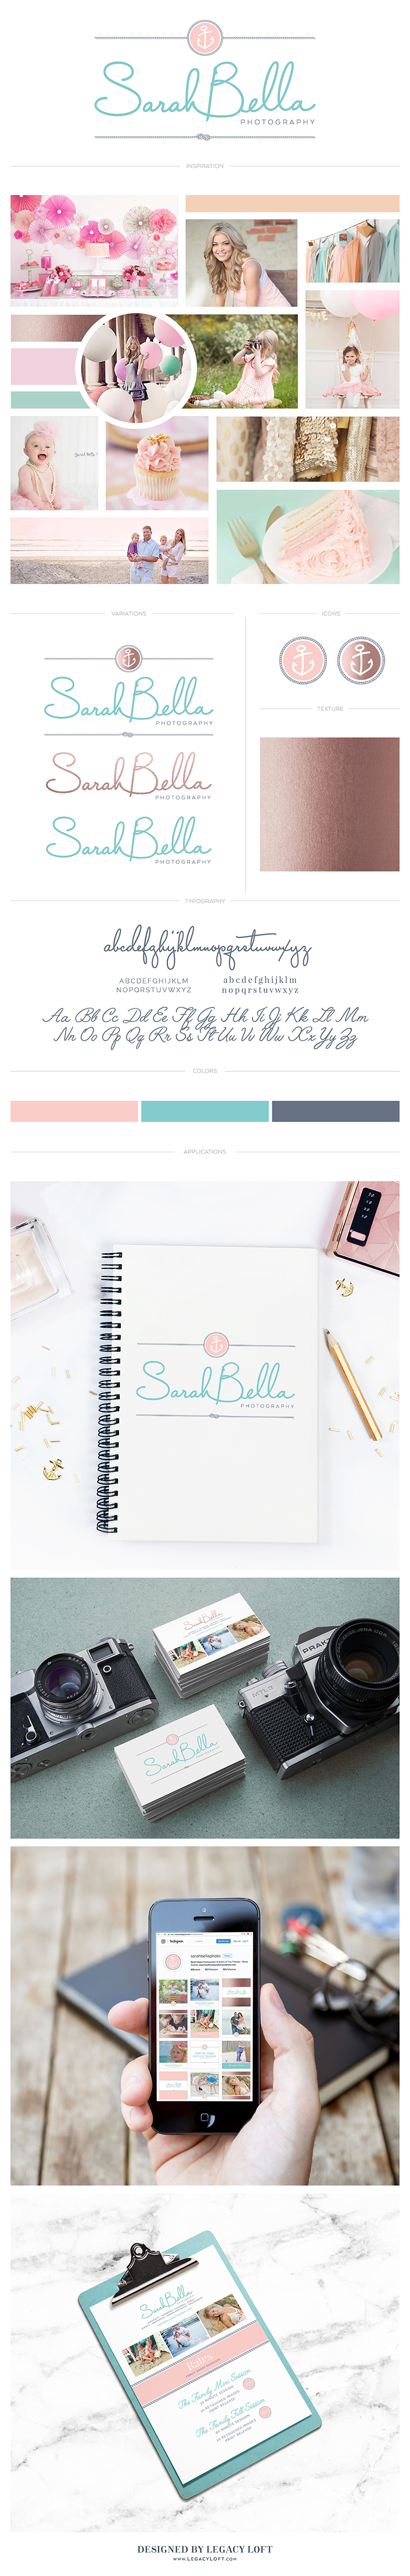 Sarah-Bella-photography-brand-board-design.jpg